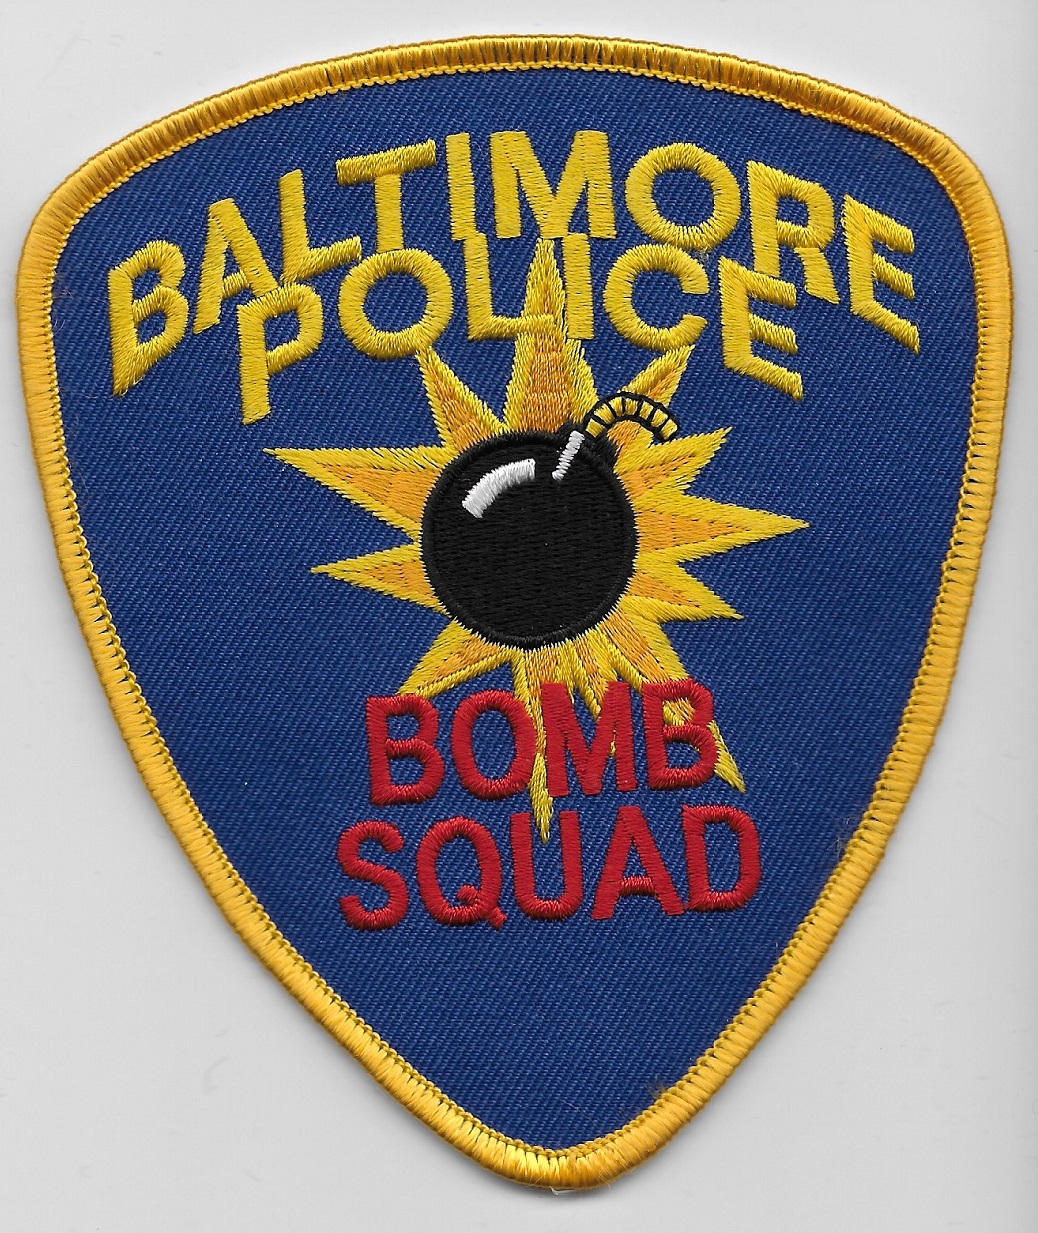 Baltimore Police Bomb Squad MD